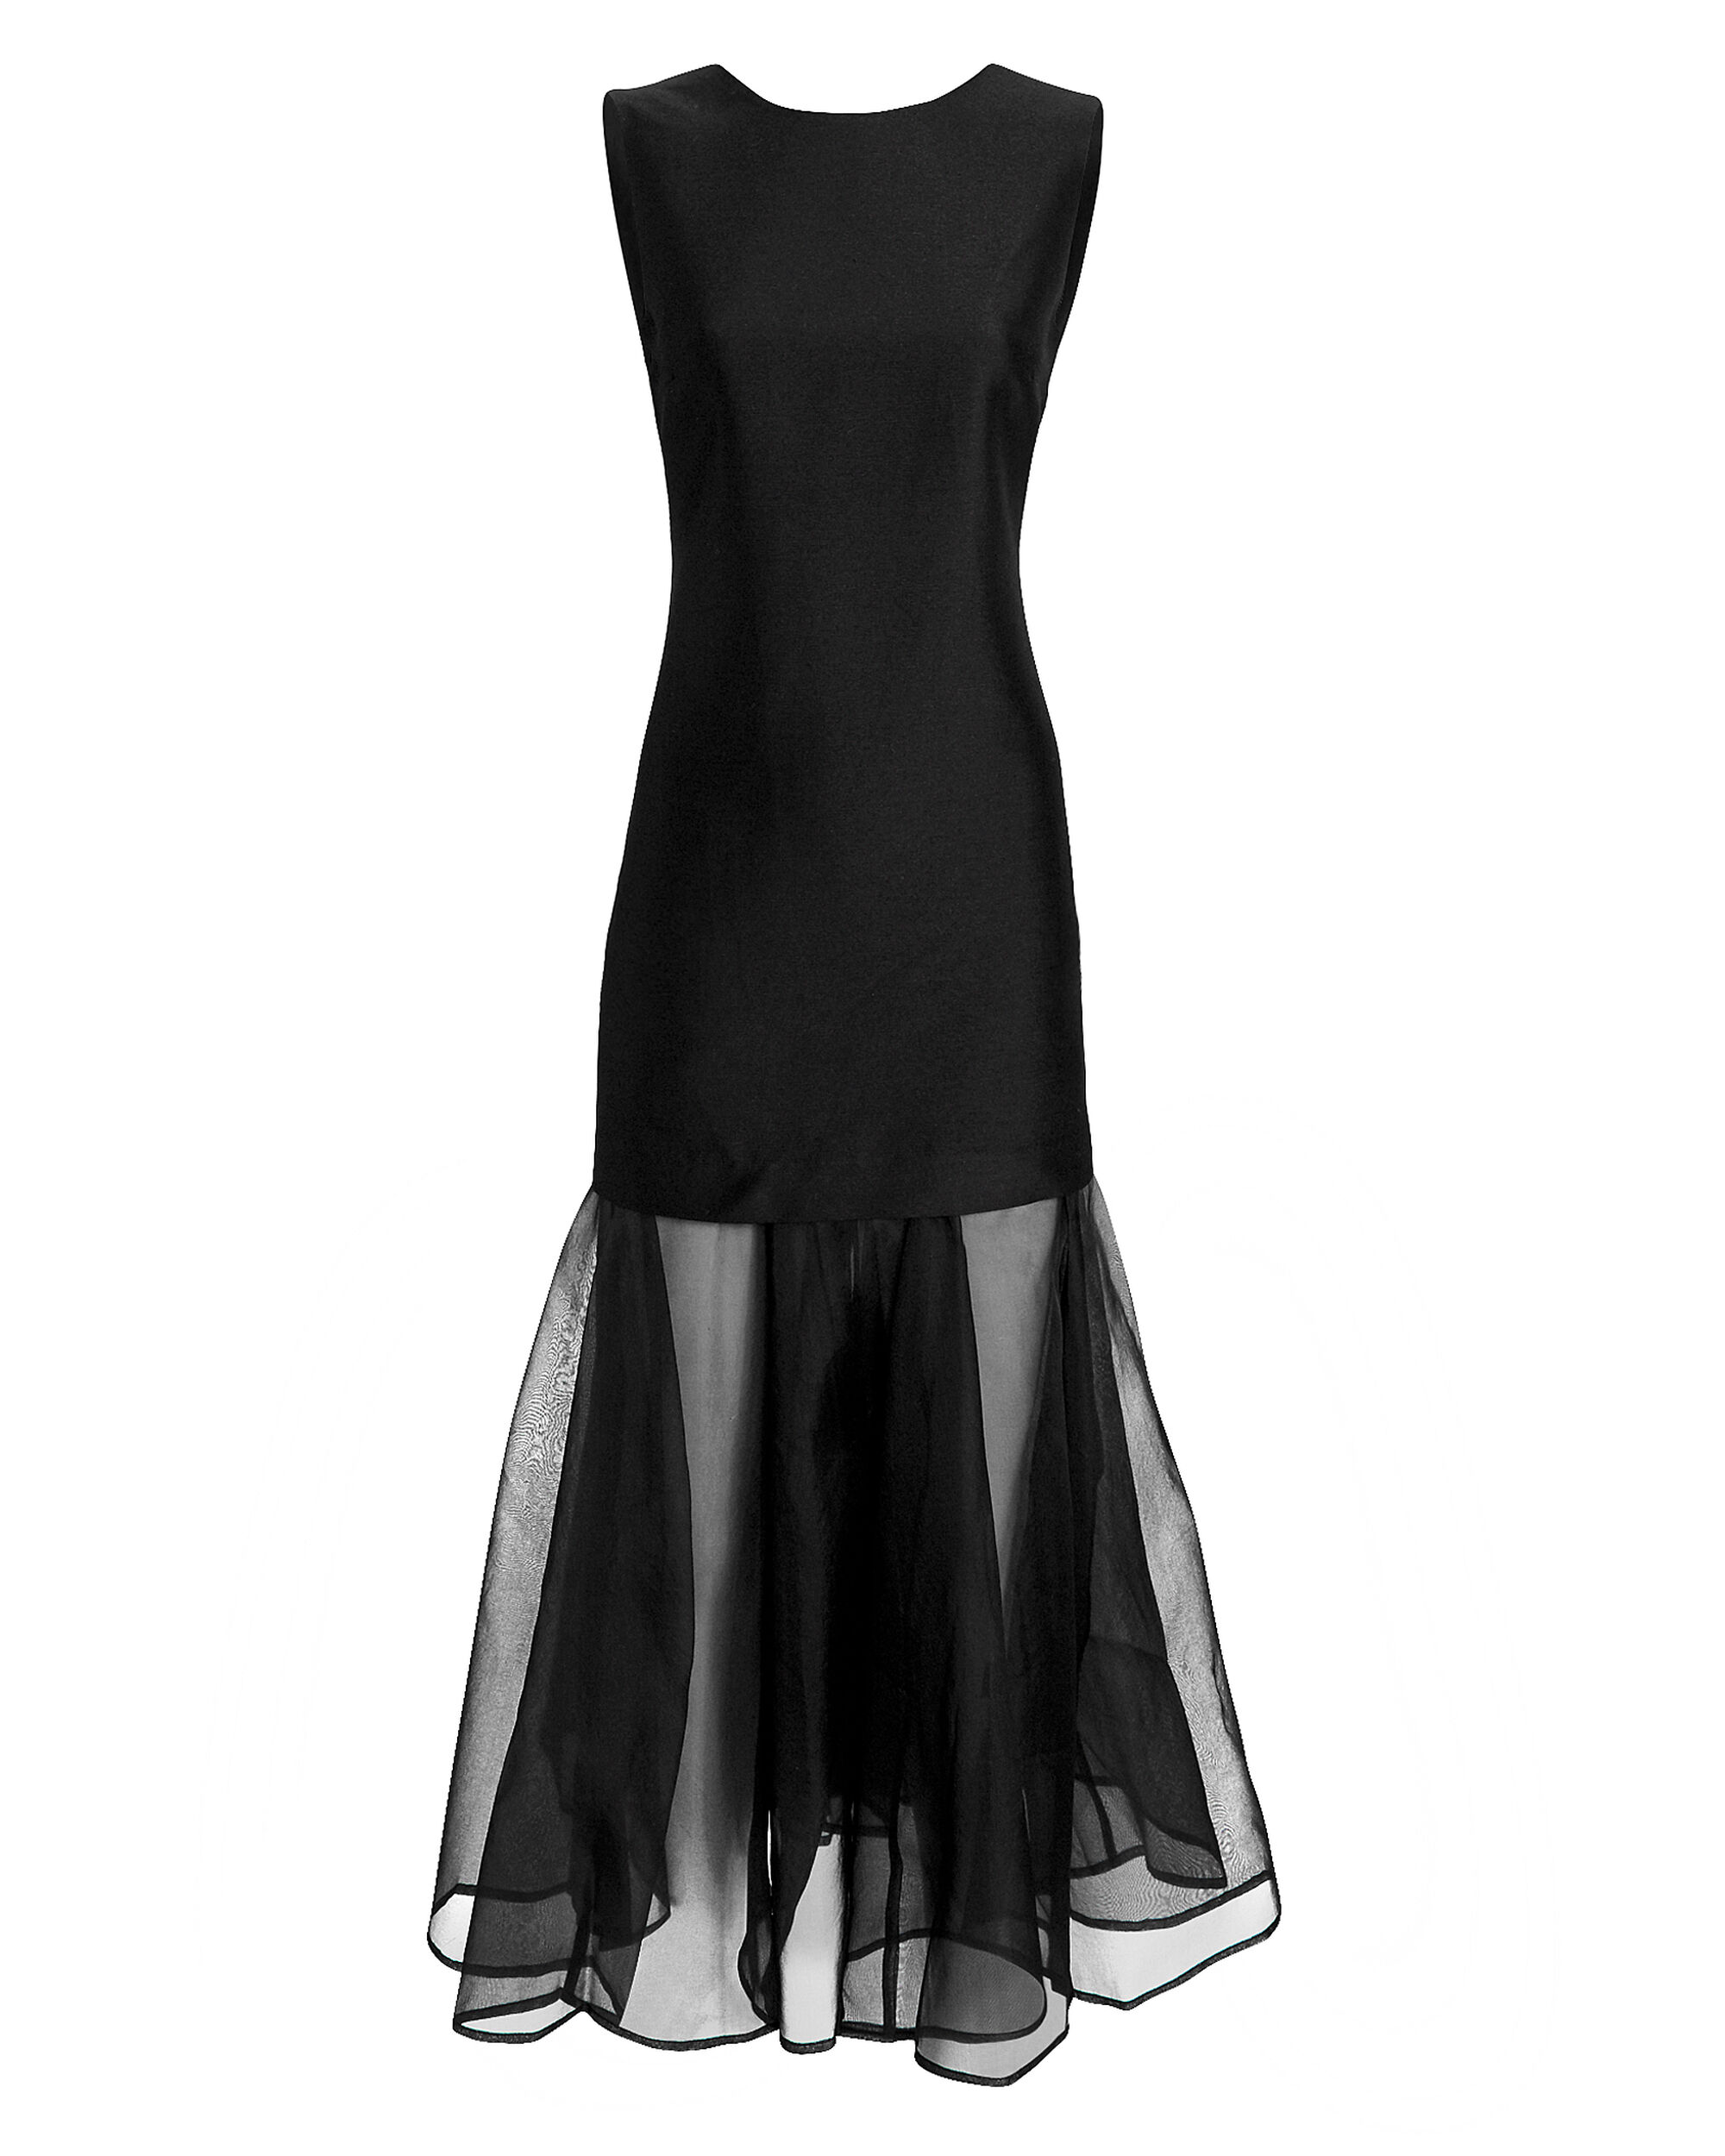 Find Strength In Your Identity Dress, BLACK, hi-res